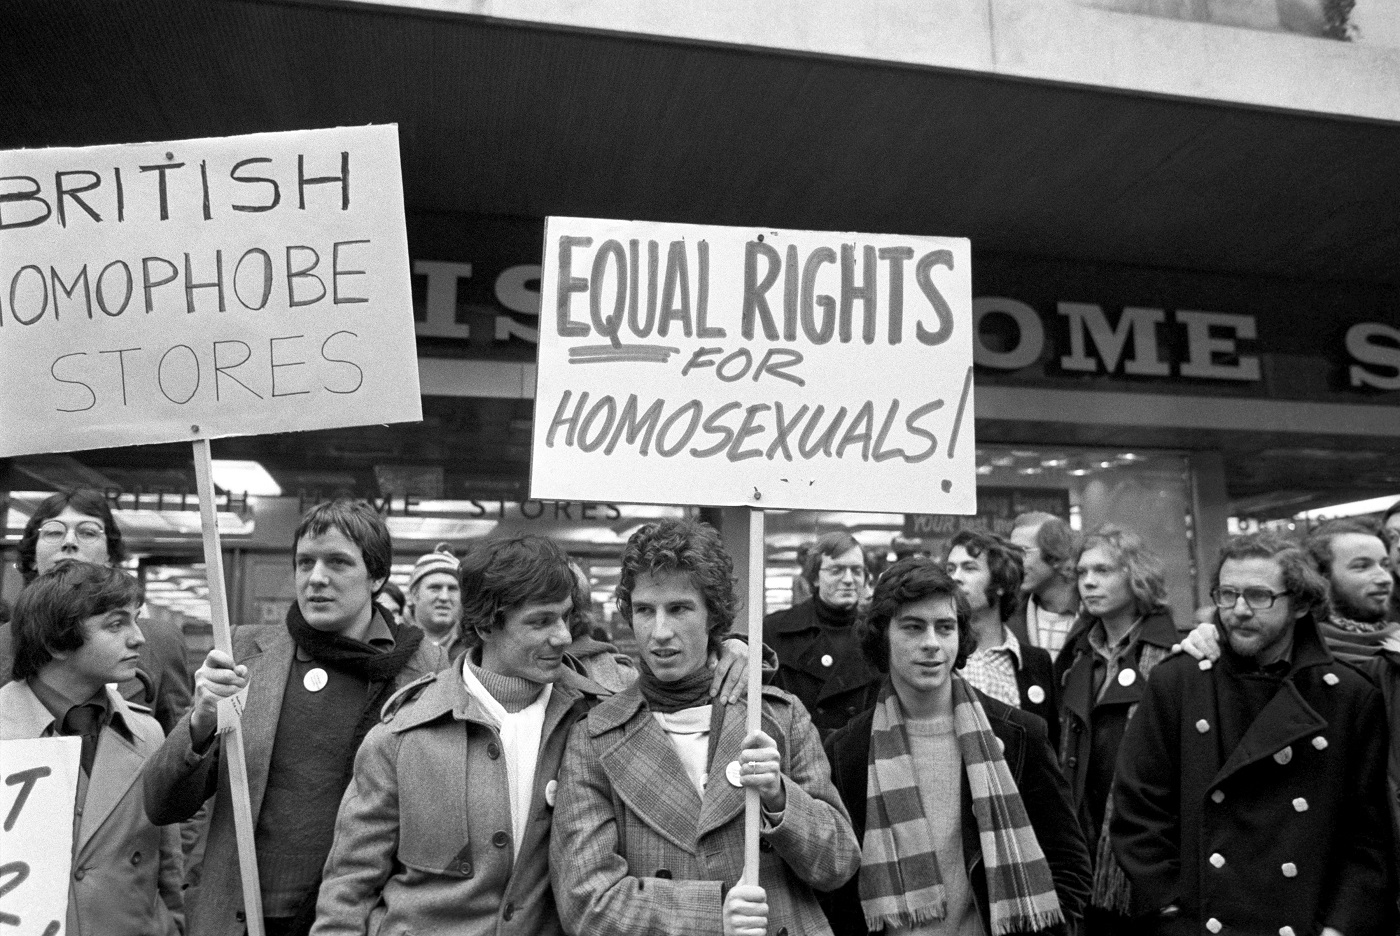 A banner carrying homosexual Tony Whitehead (centre) and his friend John Roman Baker (white scarf) during a protest by supporters of the Campaign for Homosexual Equality at a British Home Stores in London's Oxford Street, over the forced resignation of Mr Whitehead after being shown on TV kissing and cuddling Mr Baker.